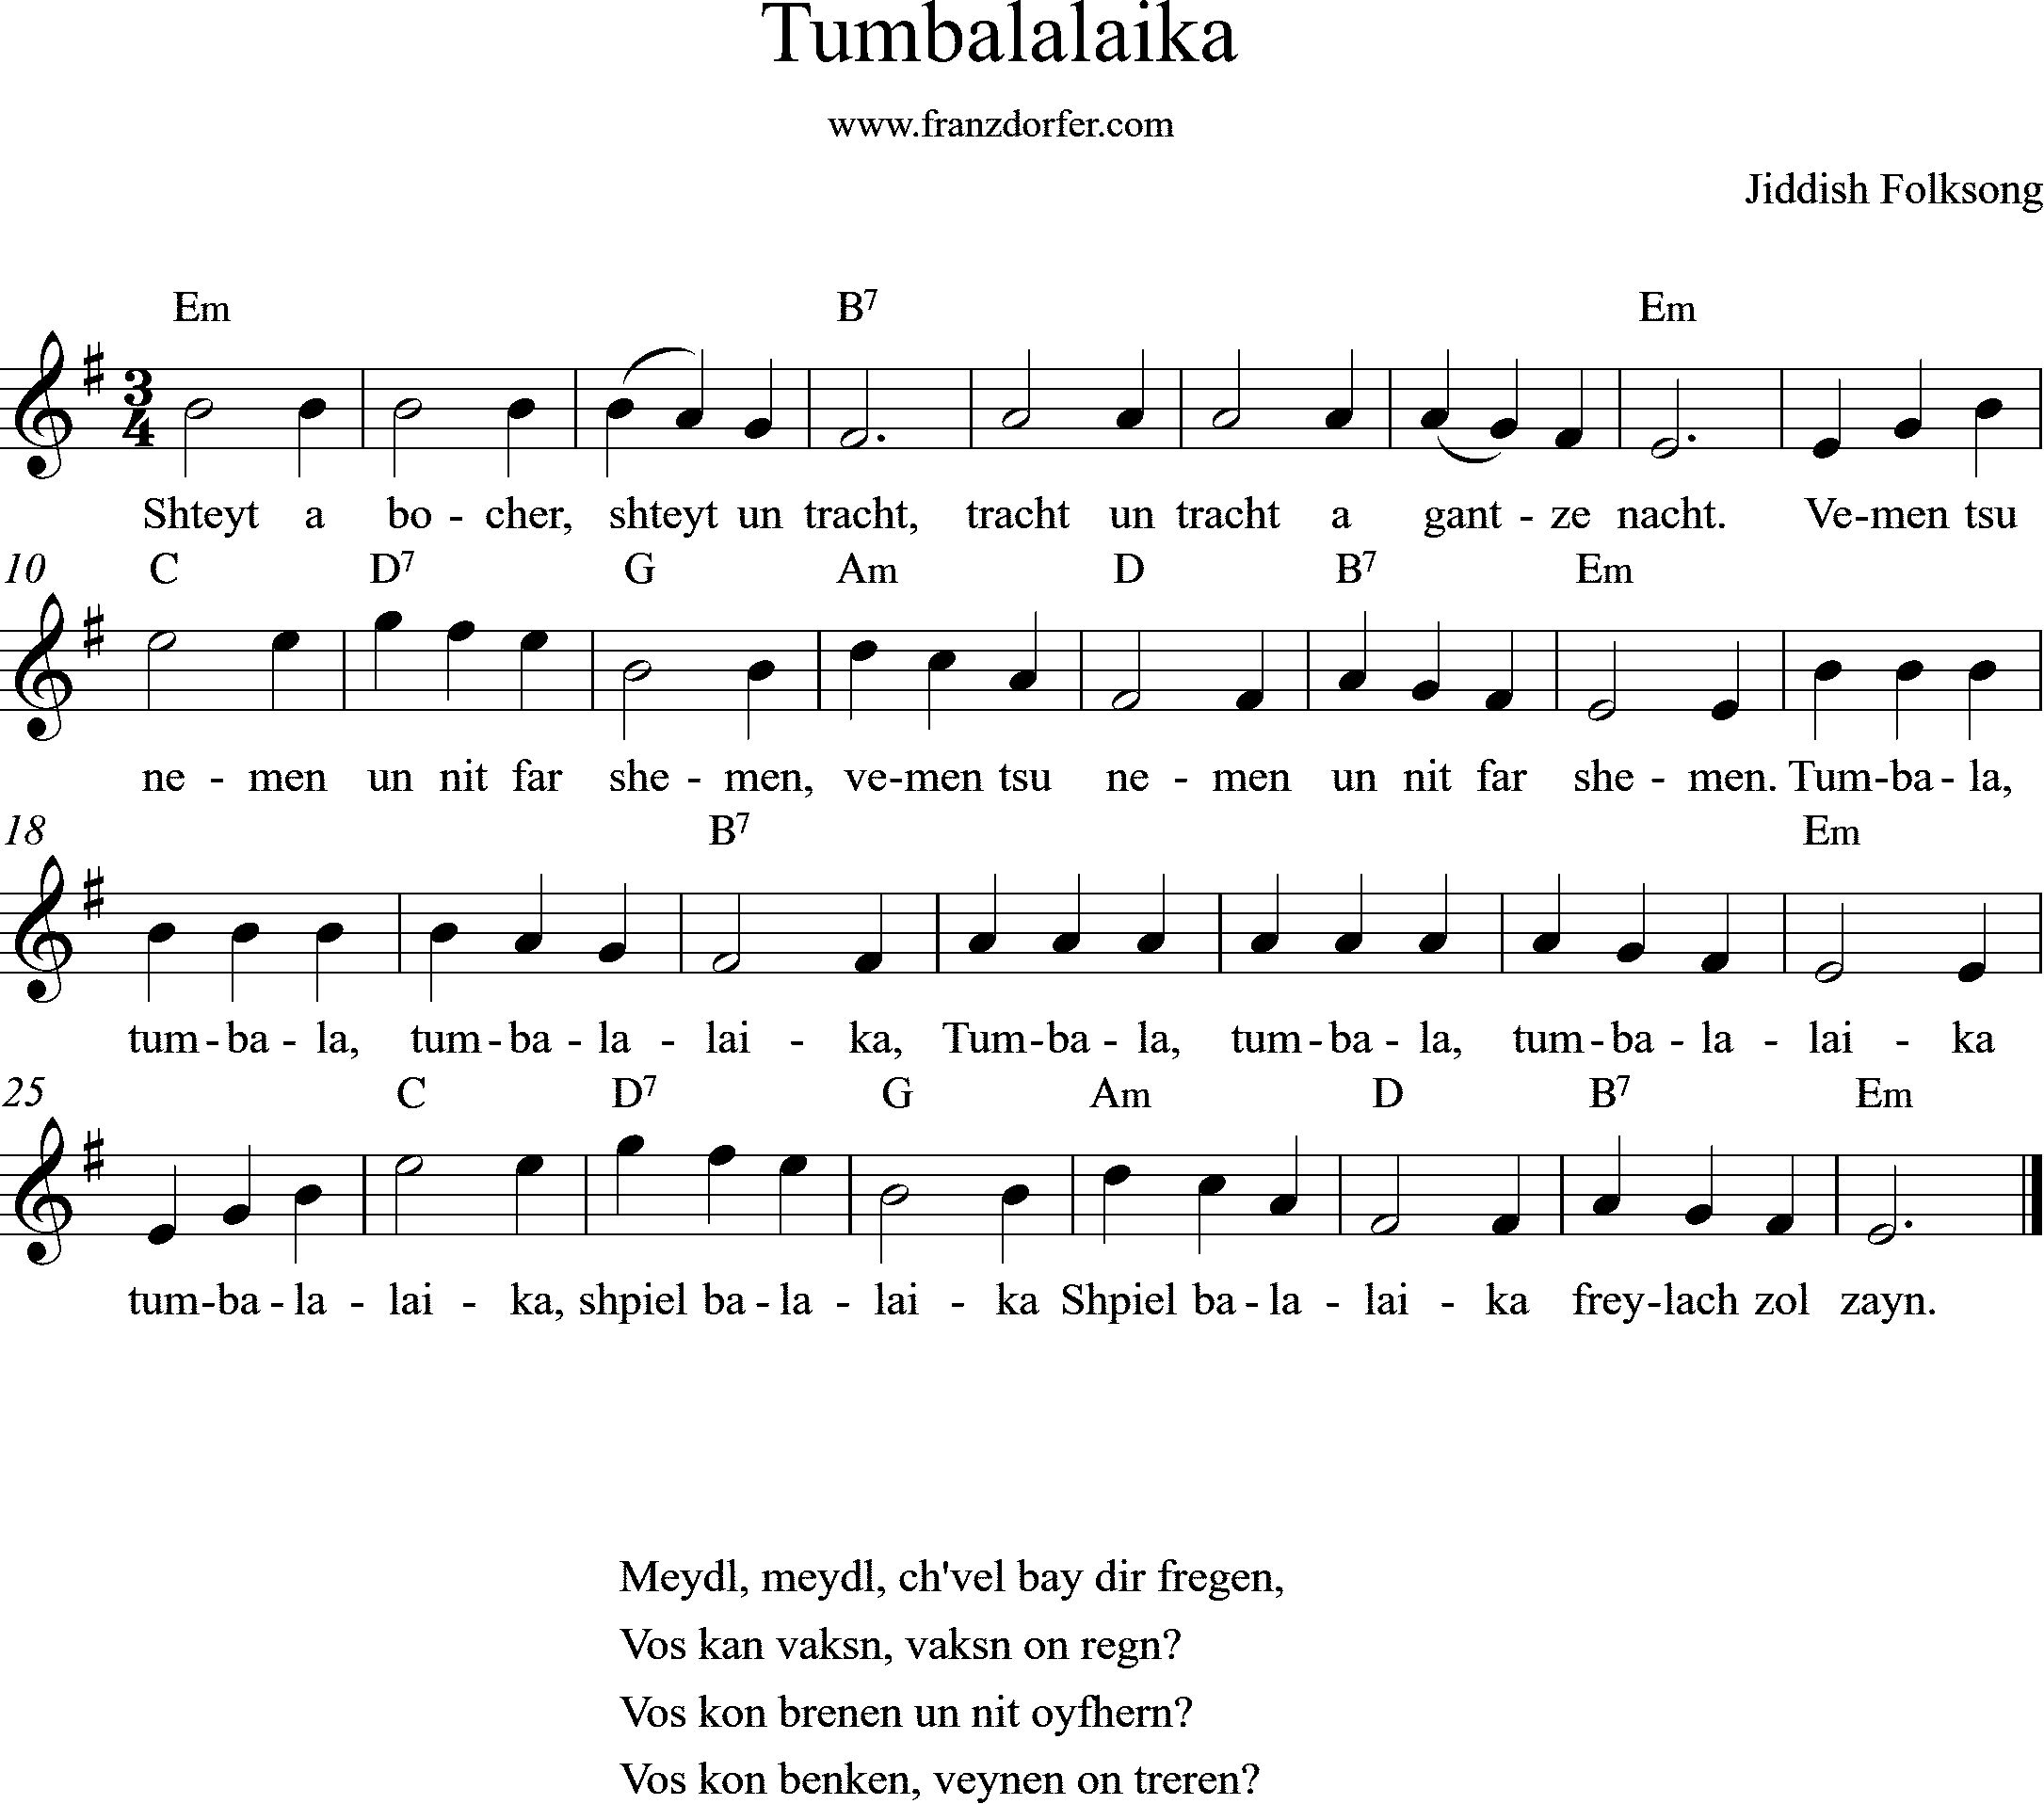 Leadsheet, Tumbalaika, e-minor